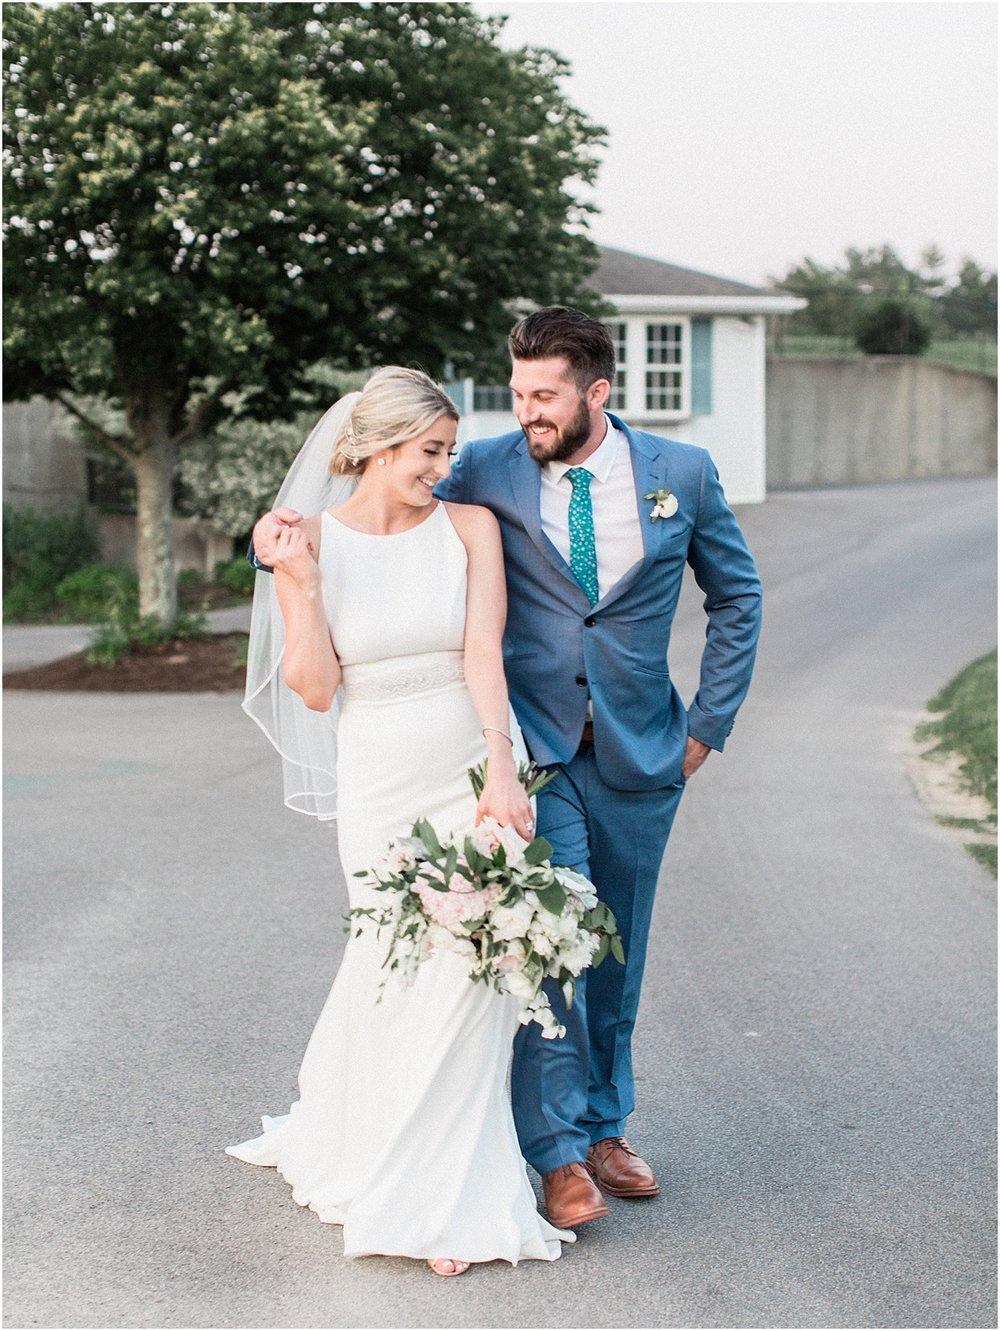 lindsey_paul_indian_pond_country_club_wild_dahlia_brewster_gardens_plymouth_cape_cod_boston_wedding_photographer_meredith_jane_photography_photo_0403.jpg